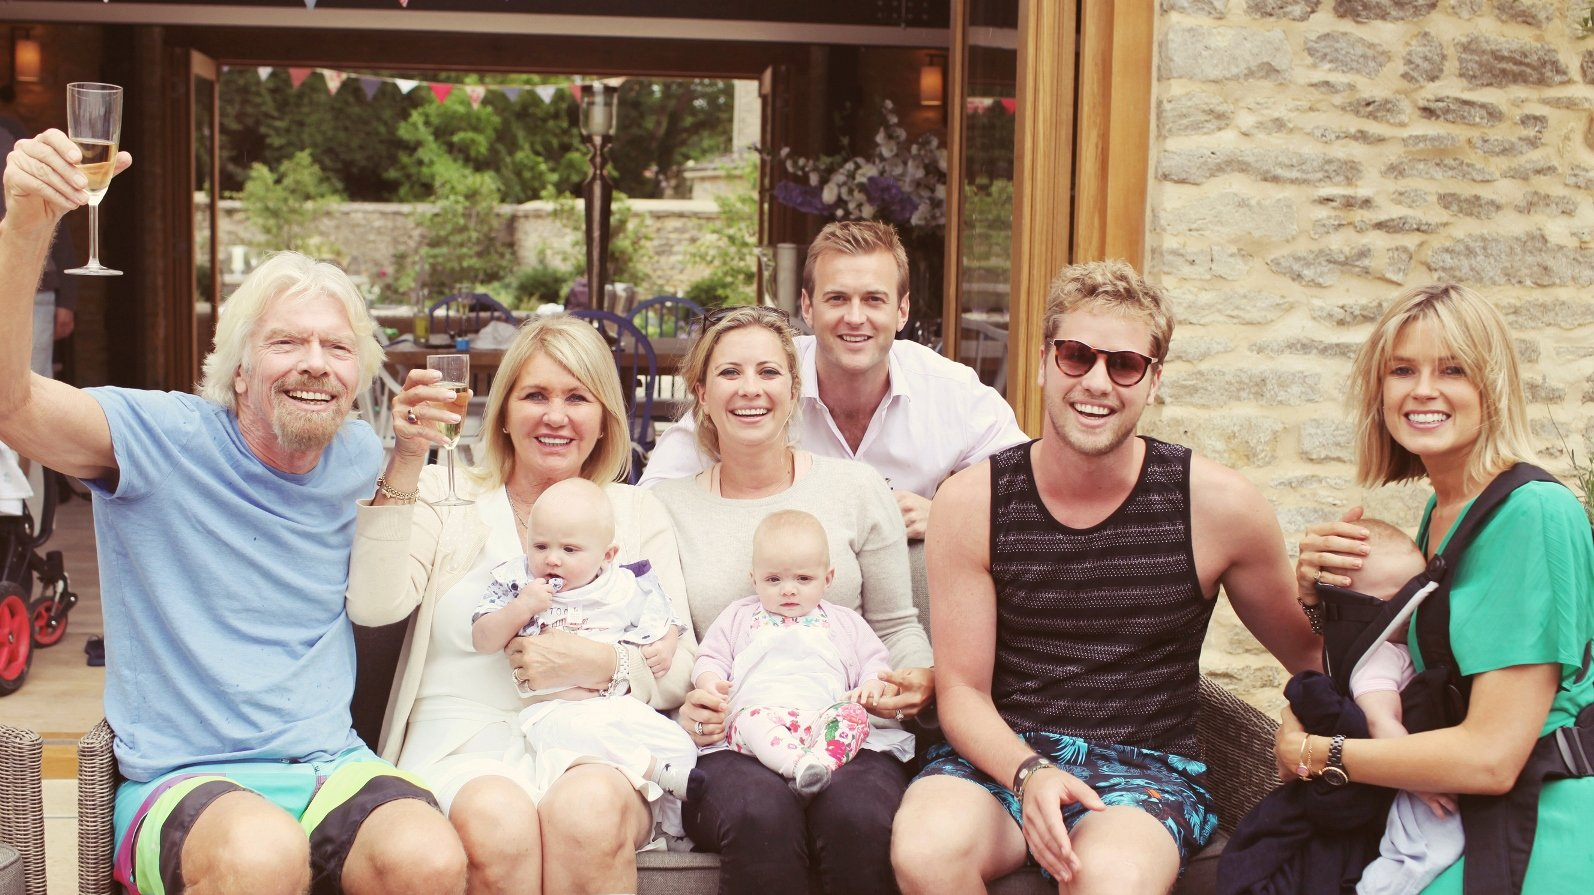 Branson 'being' happy with family. Photo Credit: Virgin.com